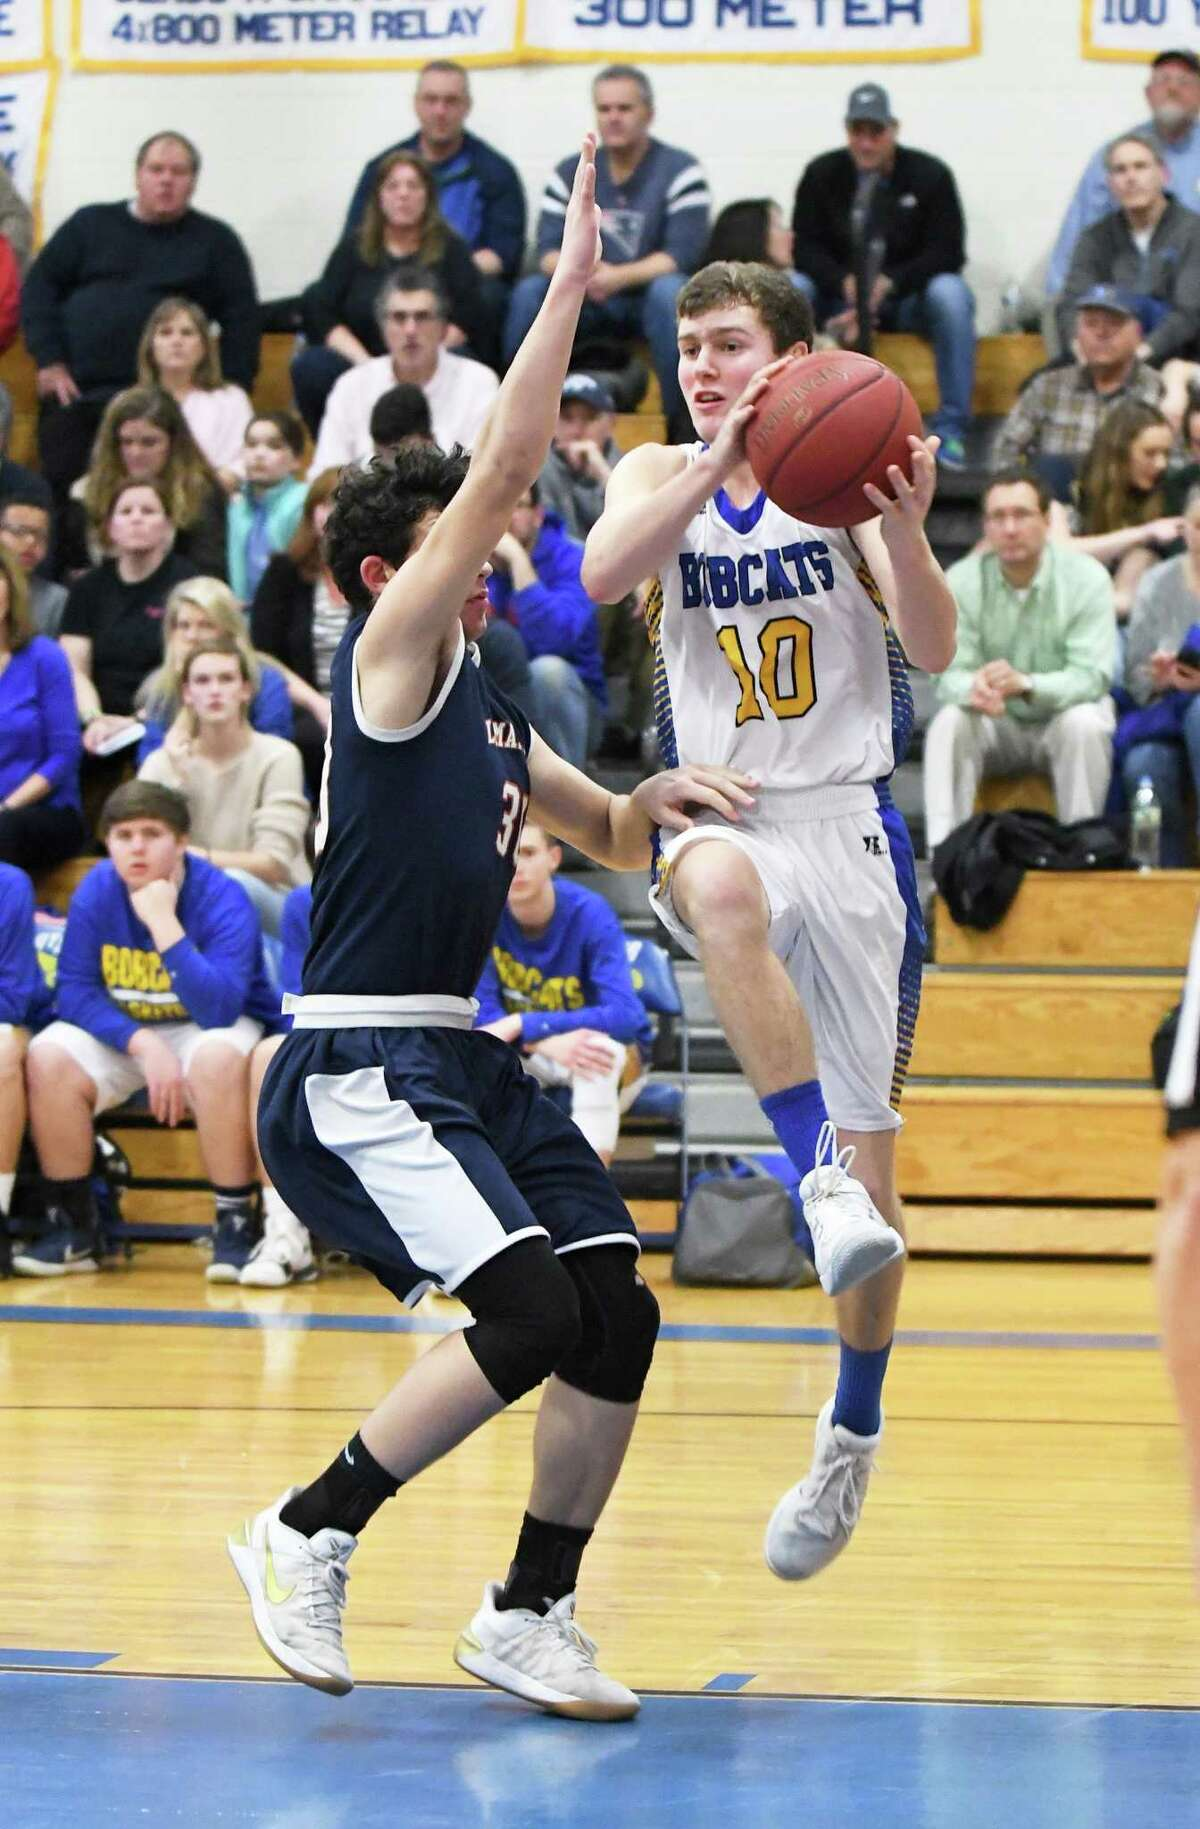 Brookfield?'s David Walker (10) right, looks past Lyman Hall?'s Luke O?'Reardon during the first round of the Division III boys basketball game between Brookfield and Lyman Hall at Brookfield, March 5, 2018.